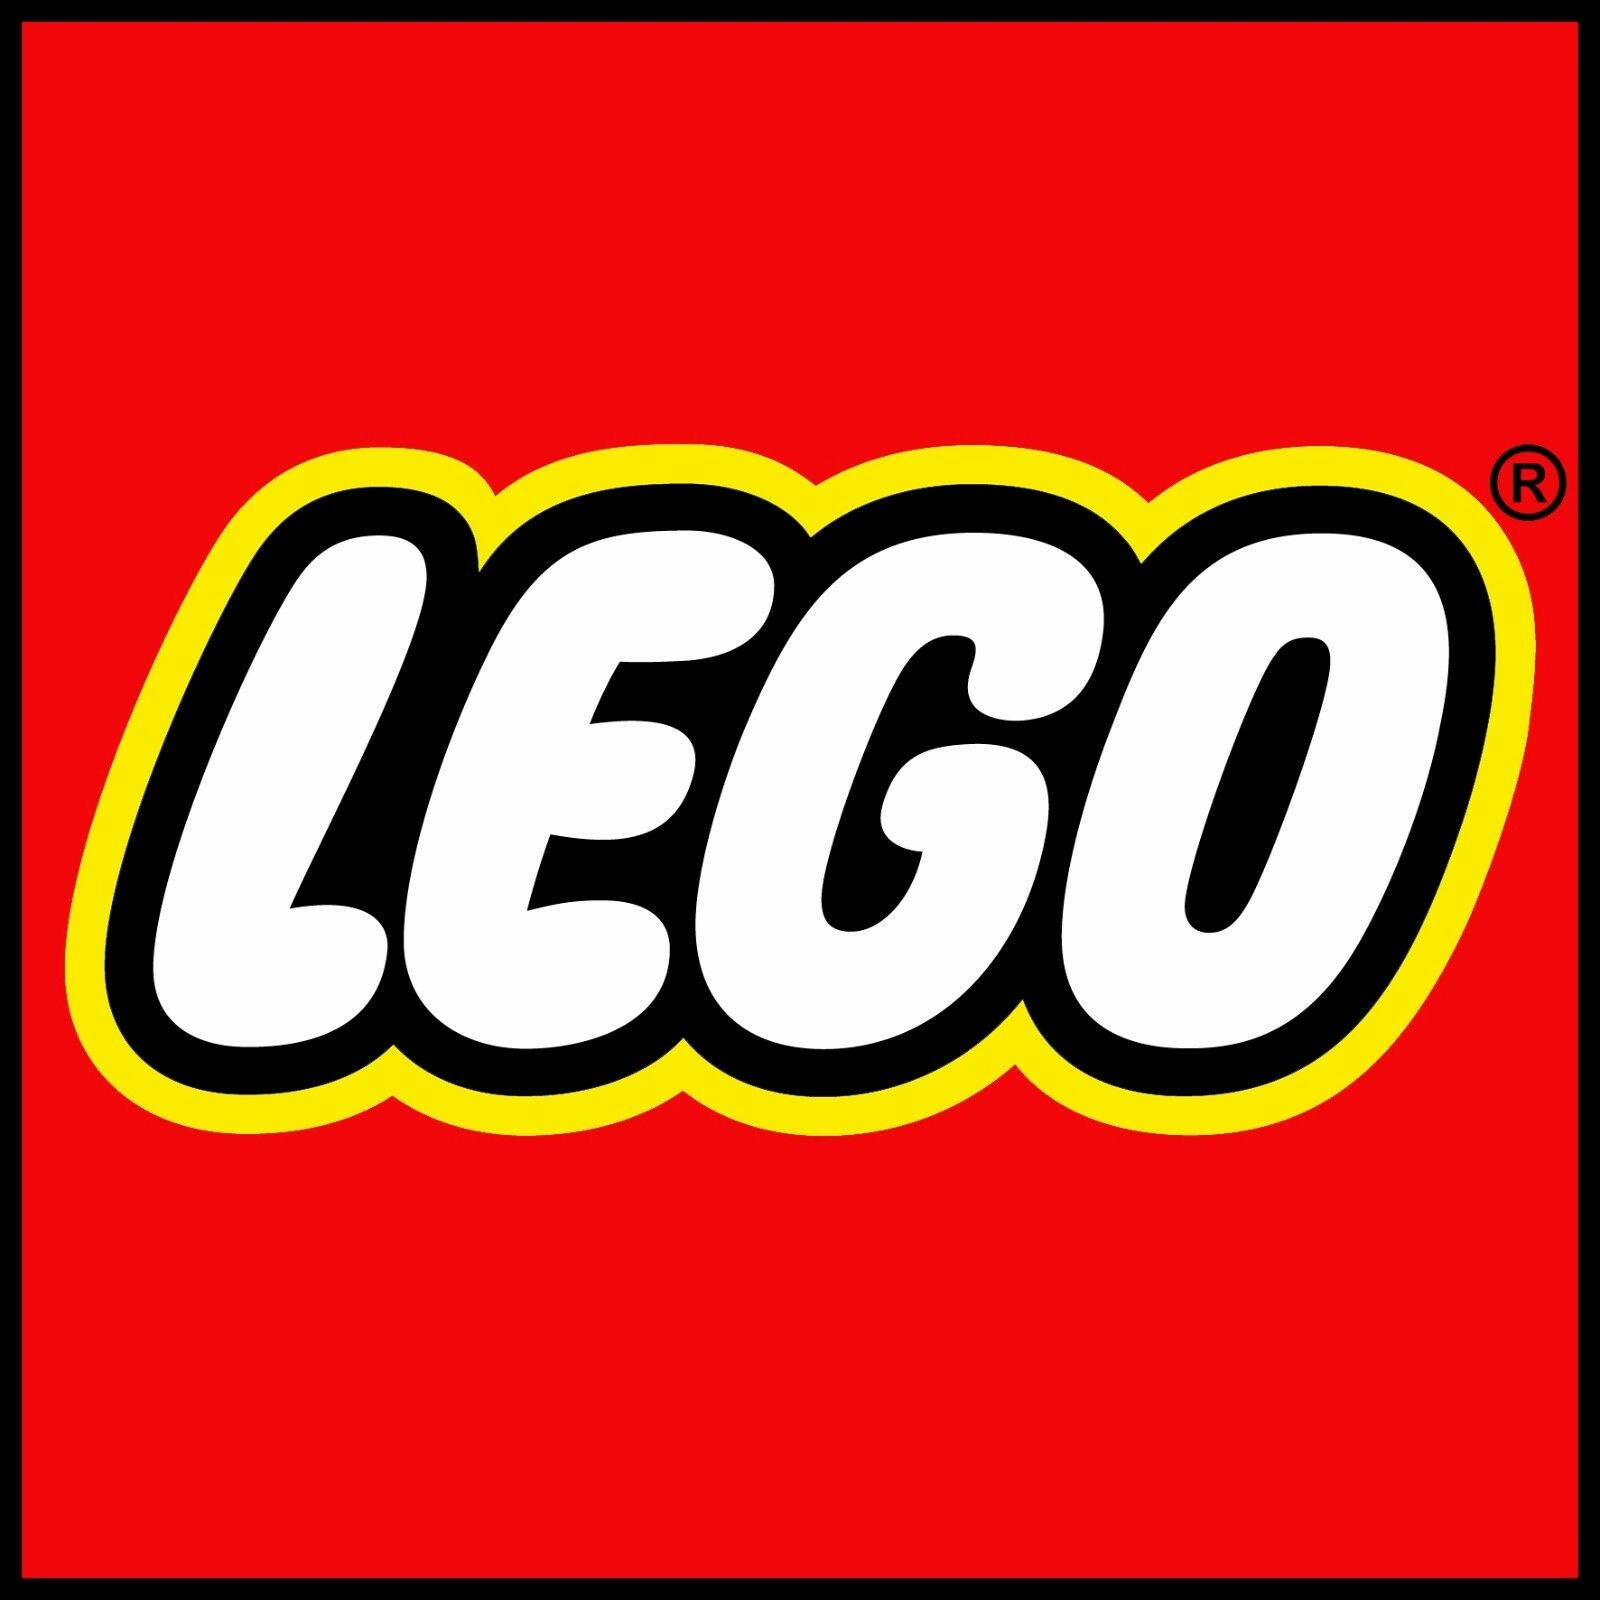 Lego Lot 490   COMING SOON   TBU